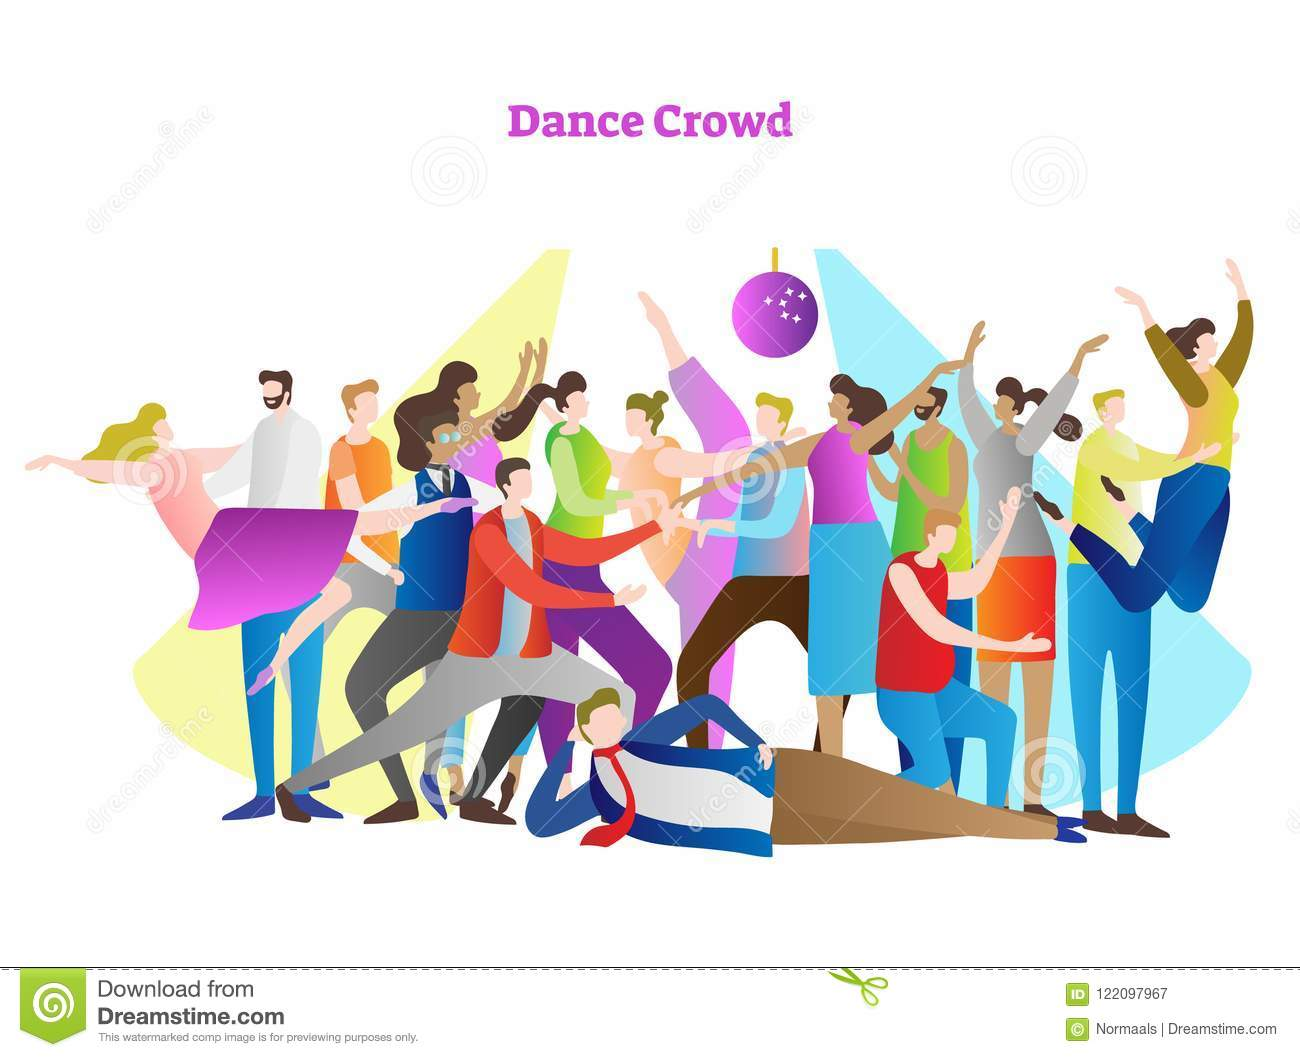 Dance crowd vector illustration. Adult friends and couples enjoying life, club, celebration and active entertainment.